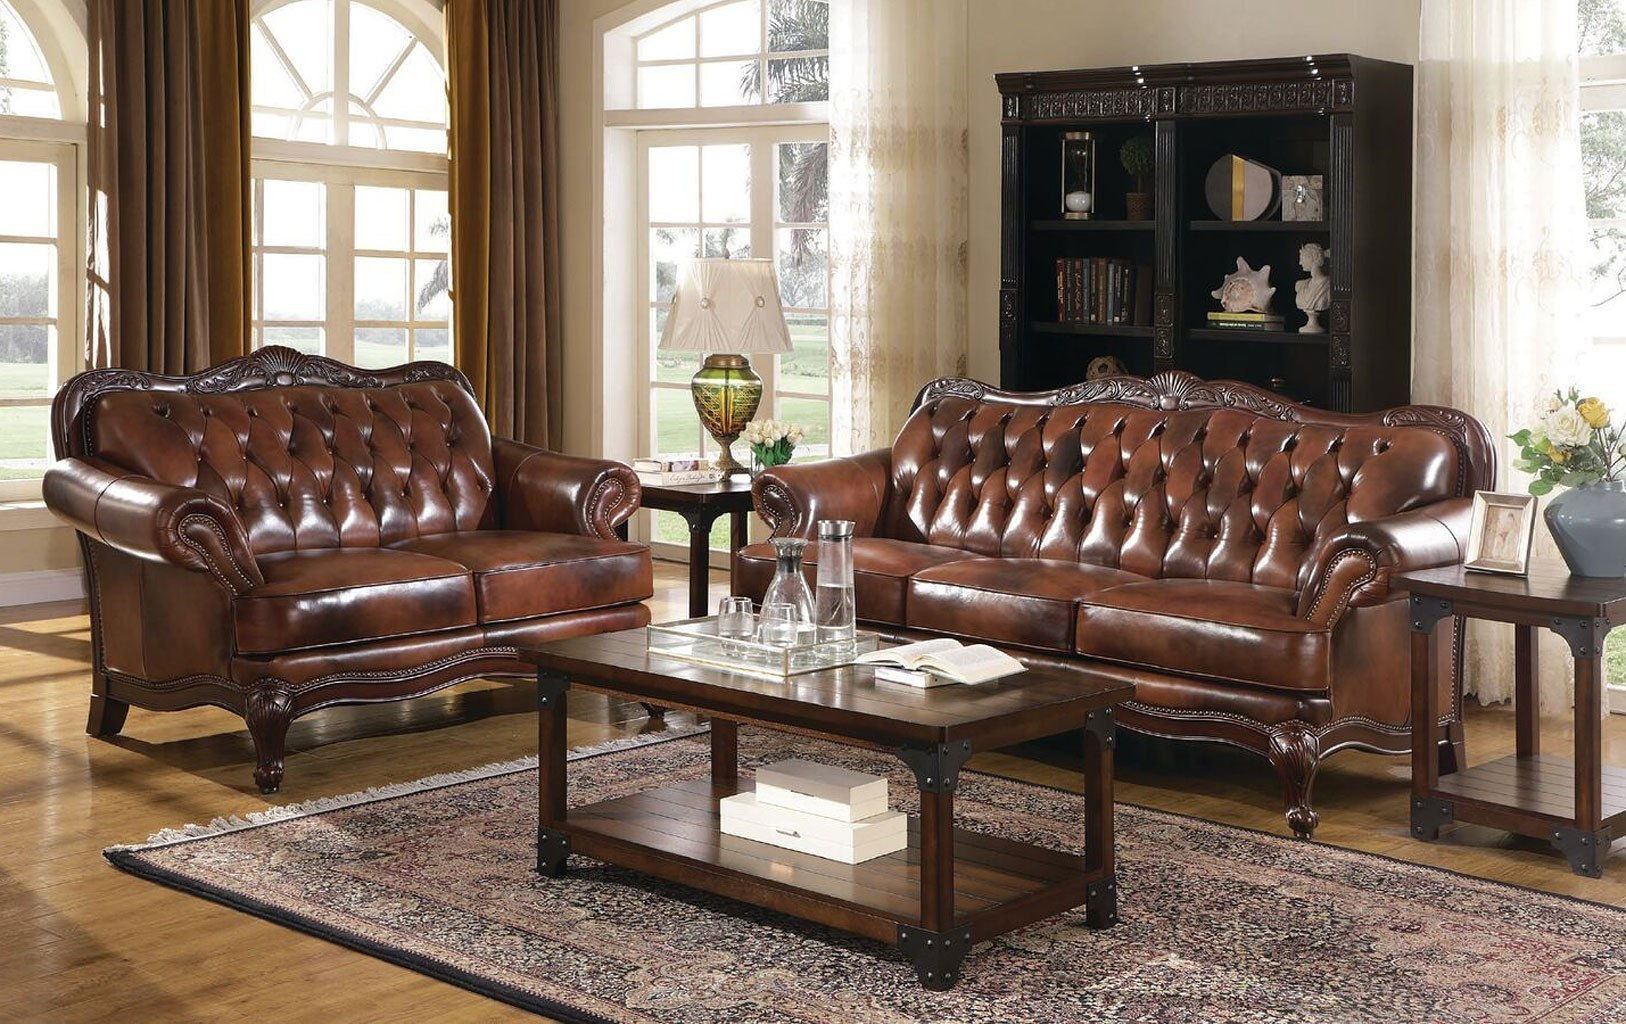 Victoria Leather Living Room Set in Set Living Room